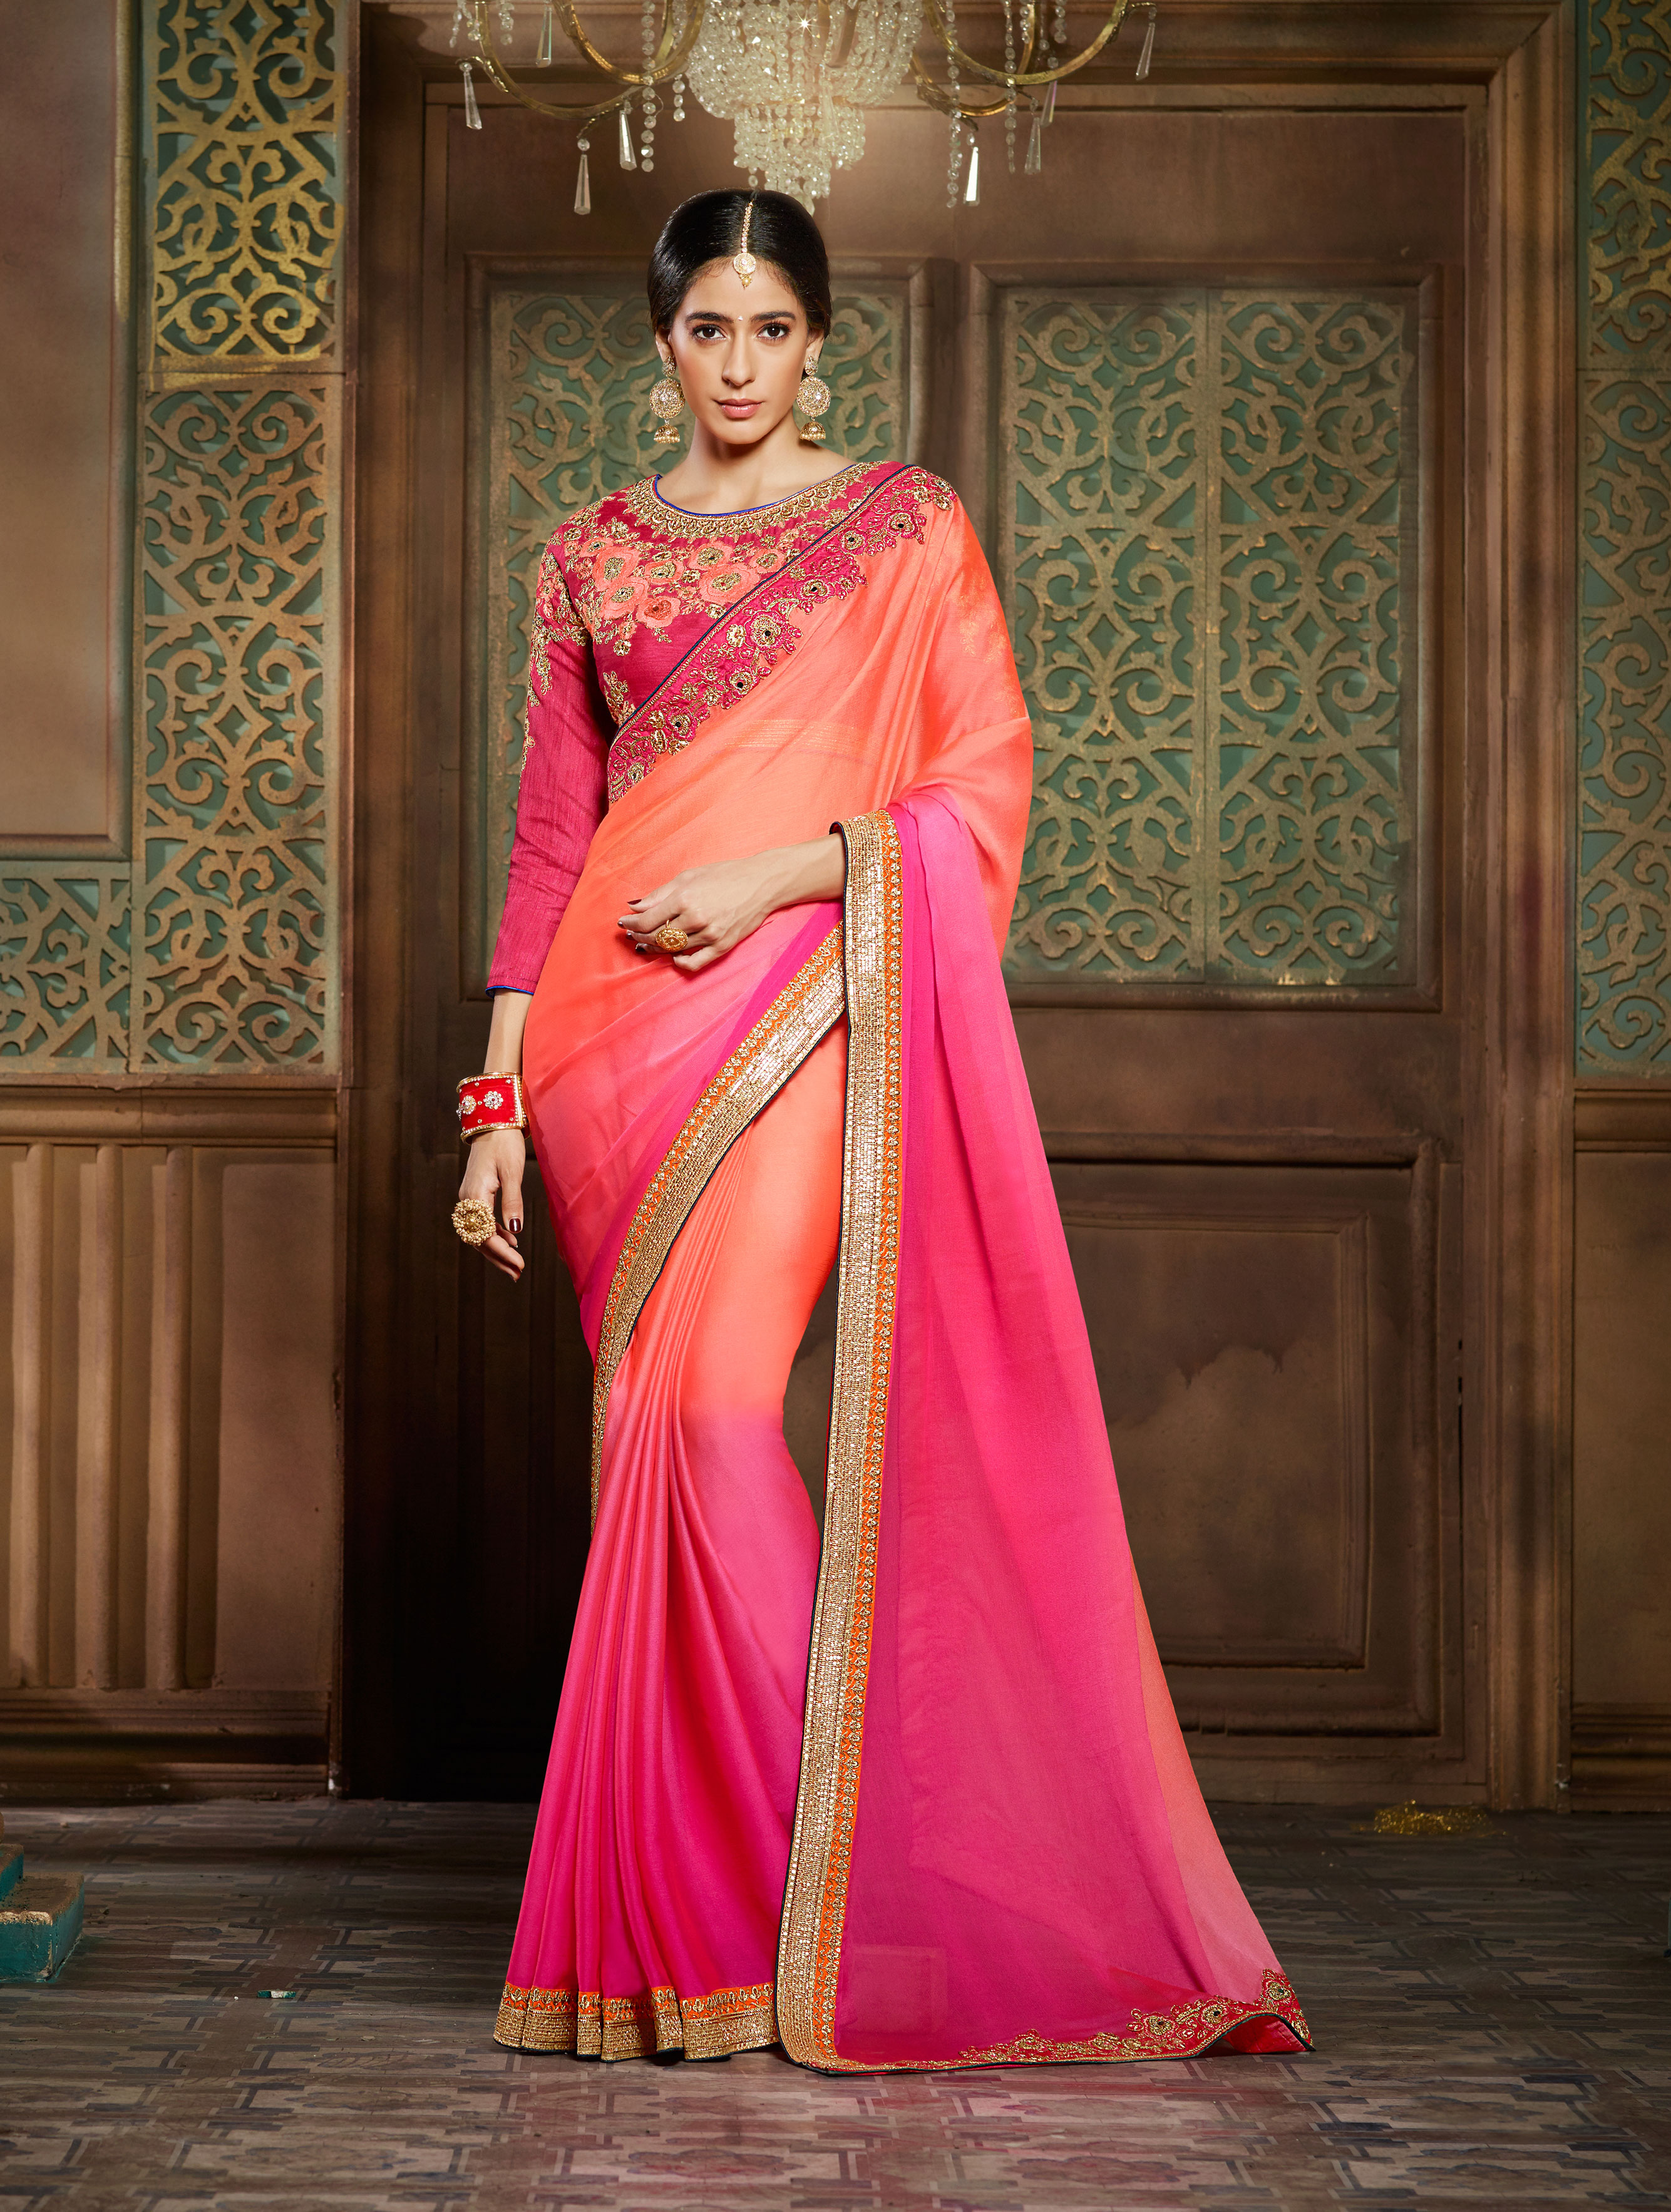 49a9028388 Pink and orange embroidered rim zim two tone chiffon saree with blouse -  Real Saree - 1837845